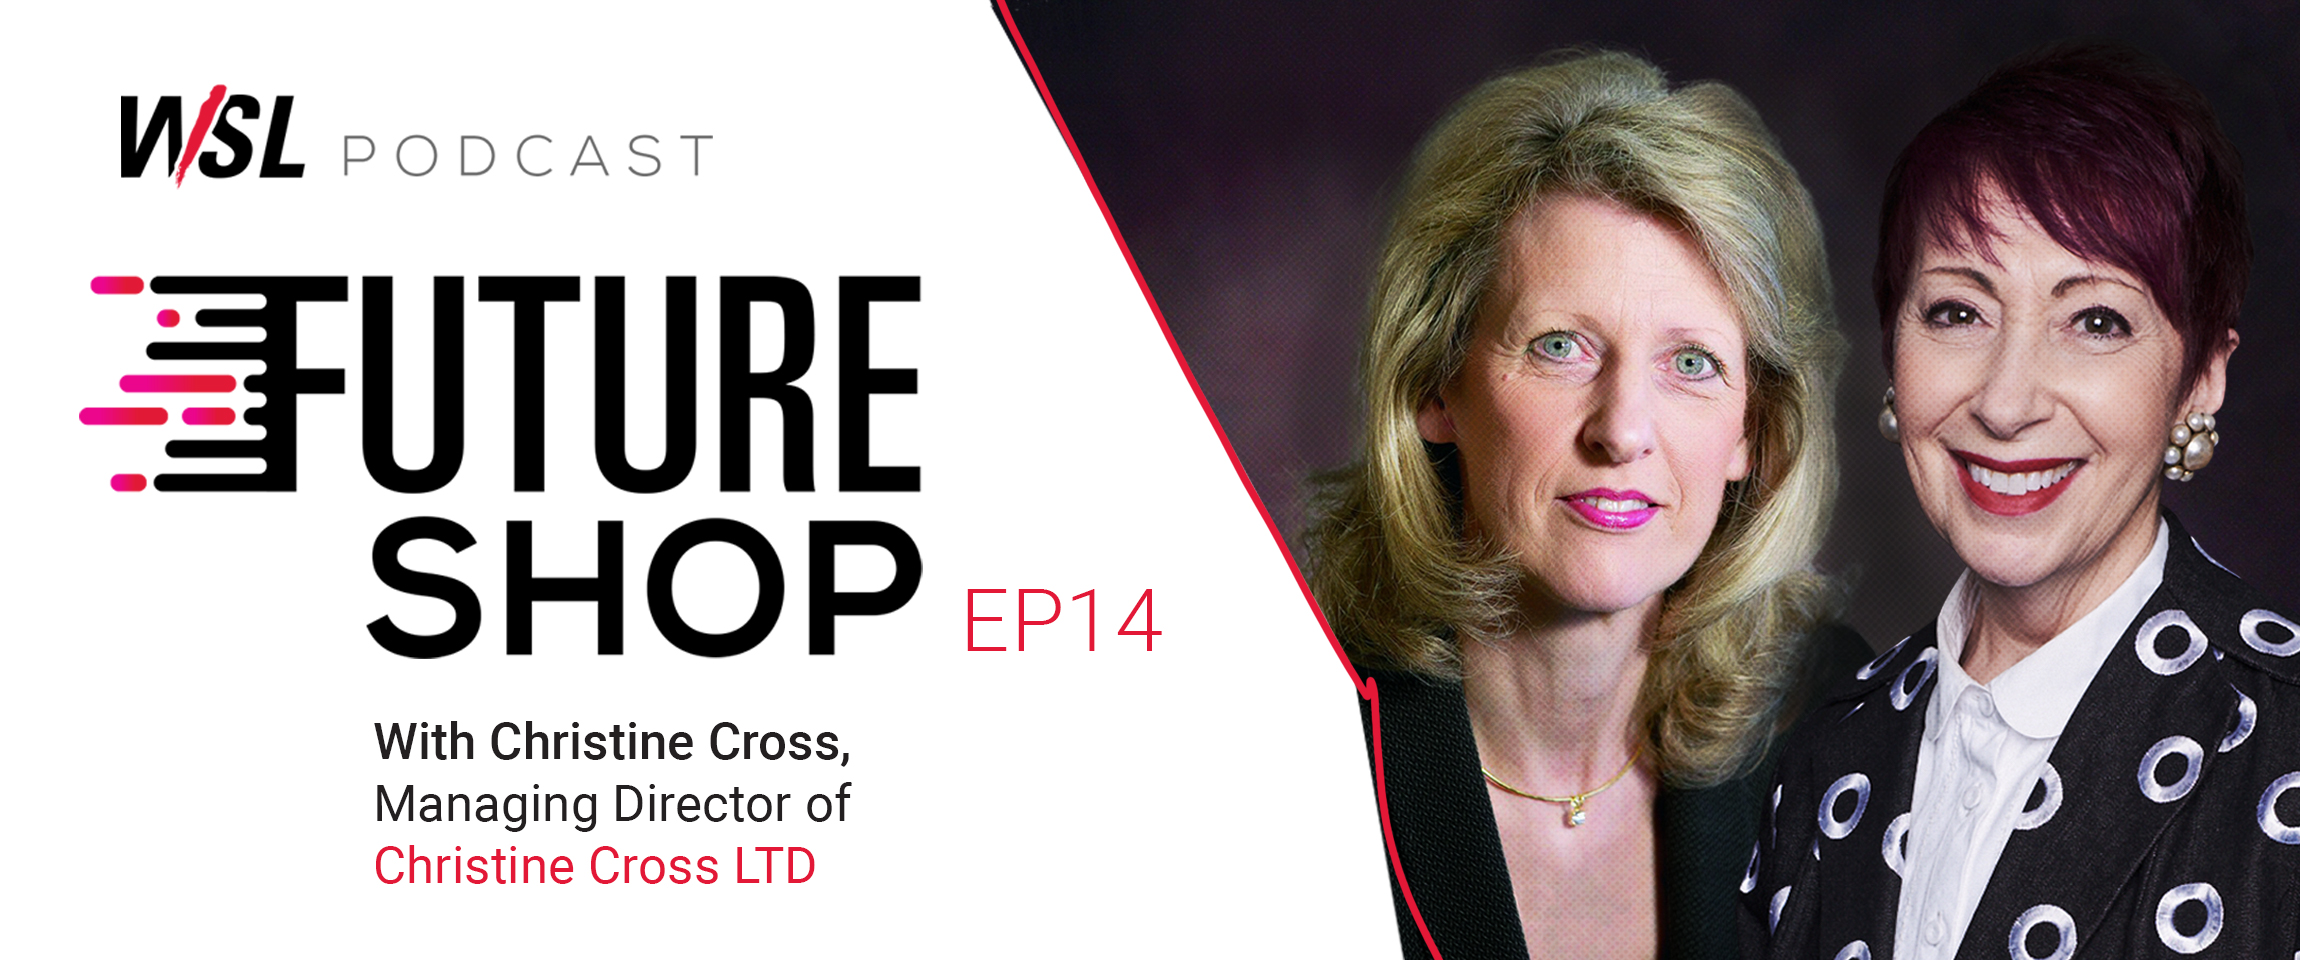 The Future of Retail from a Global View | Future Shop Podcast EP14